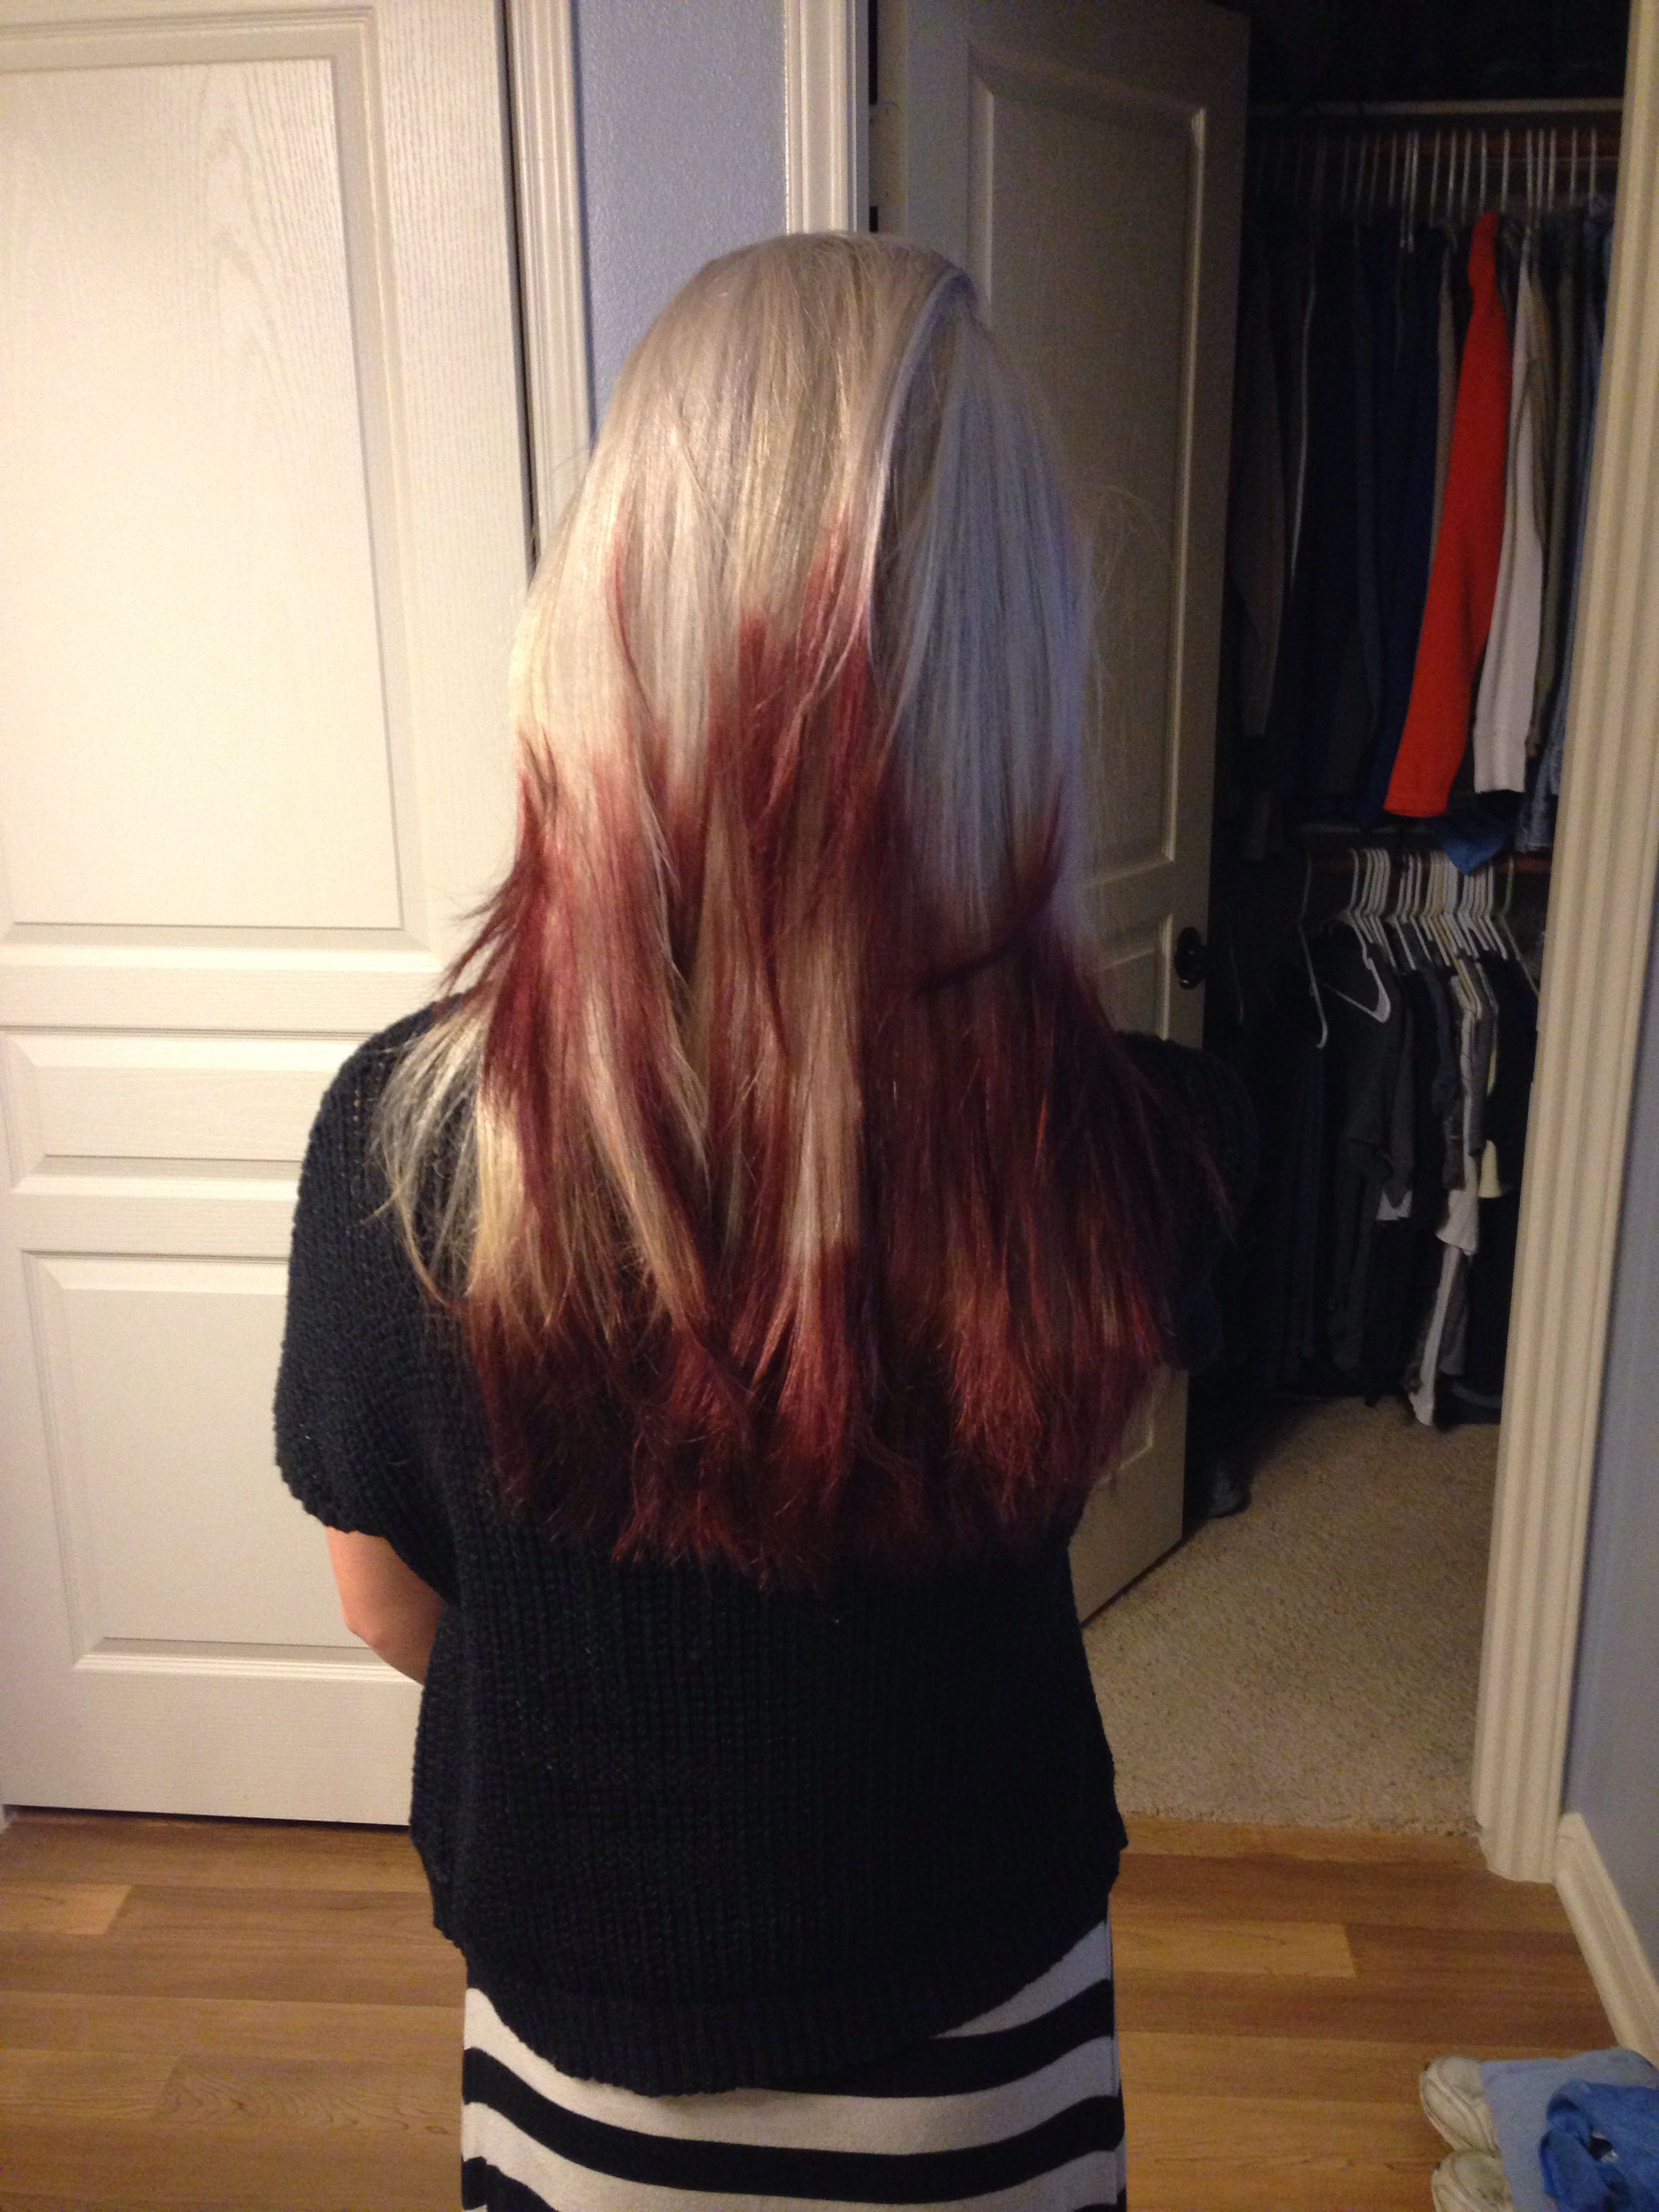 Red Peek A Boo With Platinum Blonde On Top Peekaboo Hair Blonde Hair With Red Tips Red Hair Tips